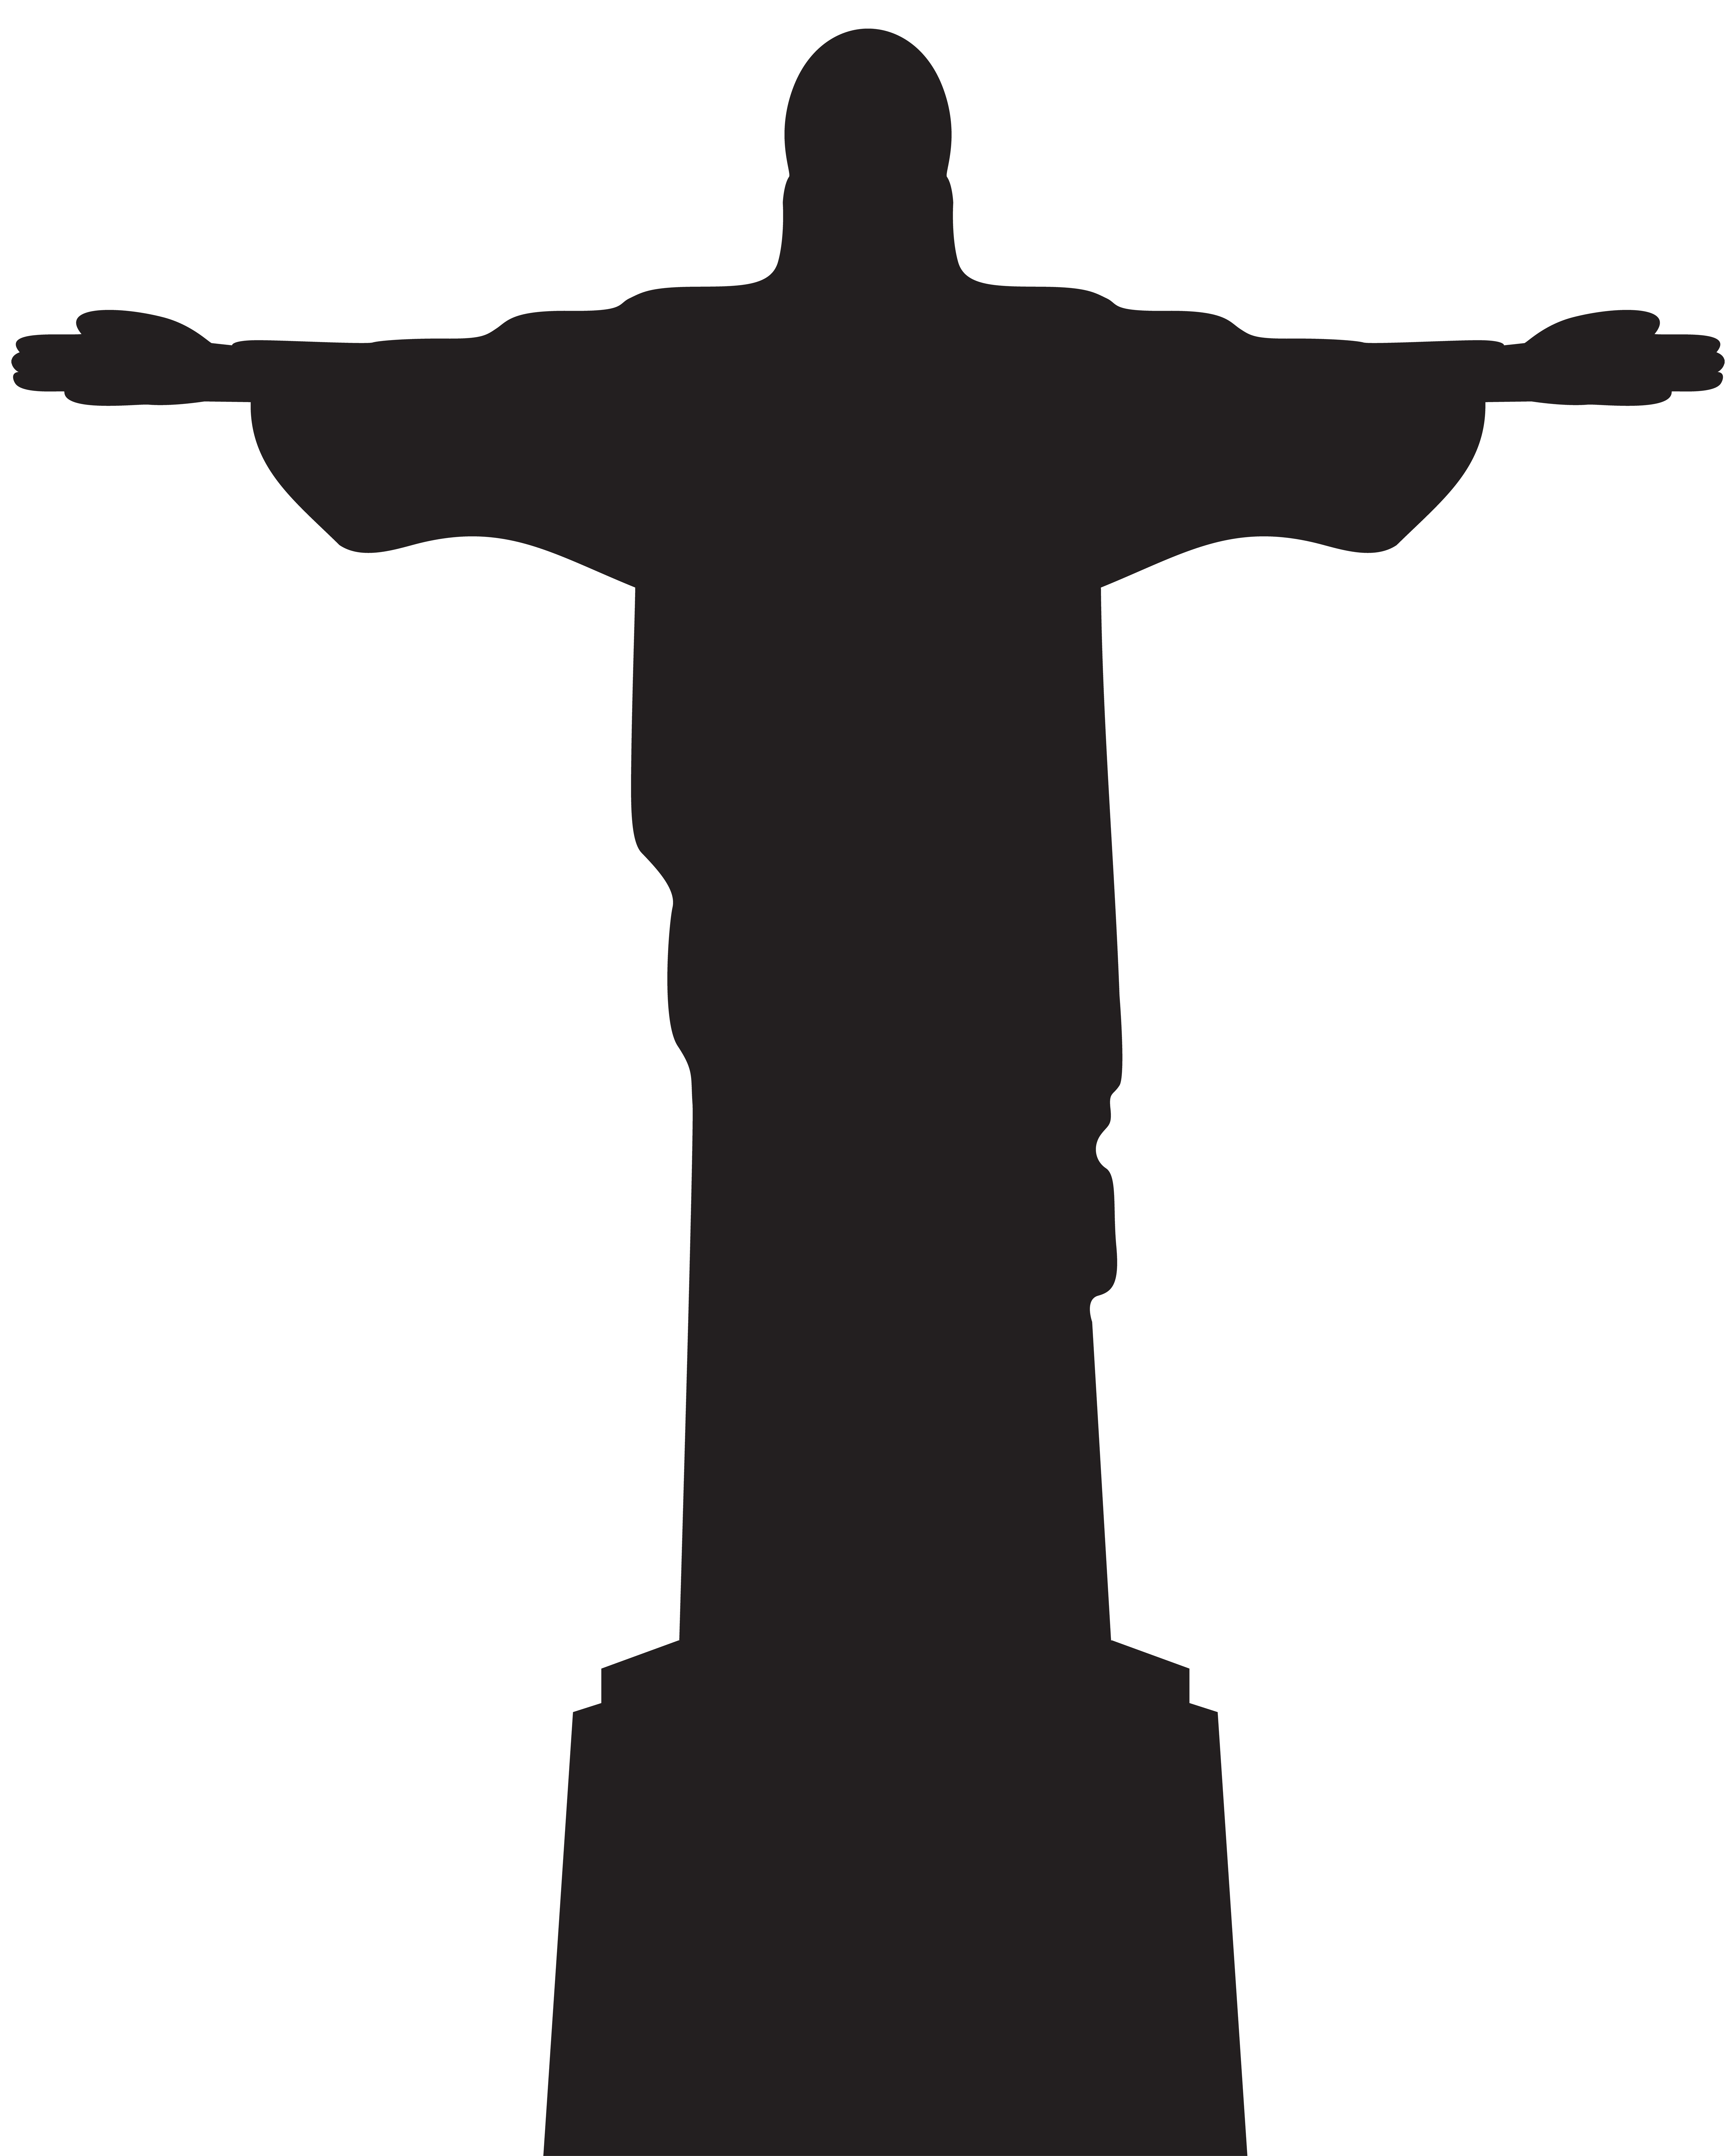 Christian clipart silhouette. Christ the redeemer corcovado